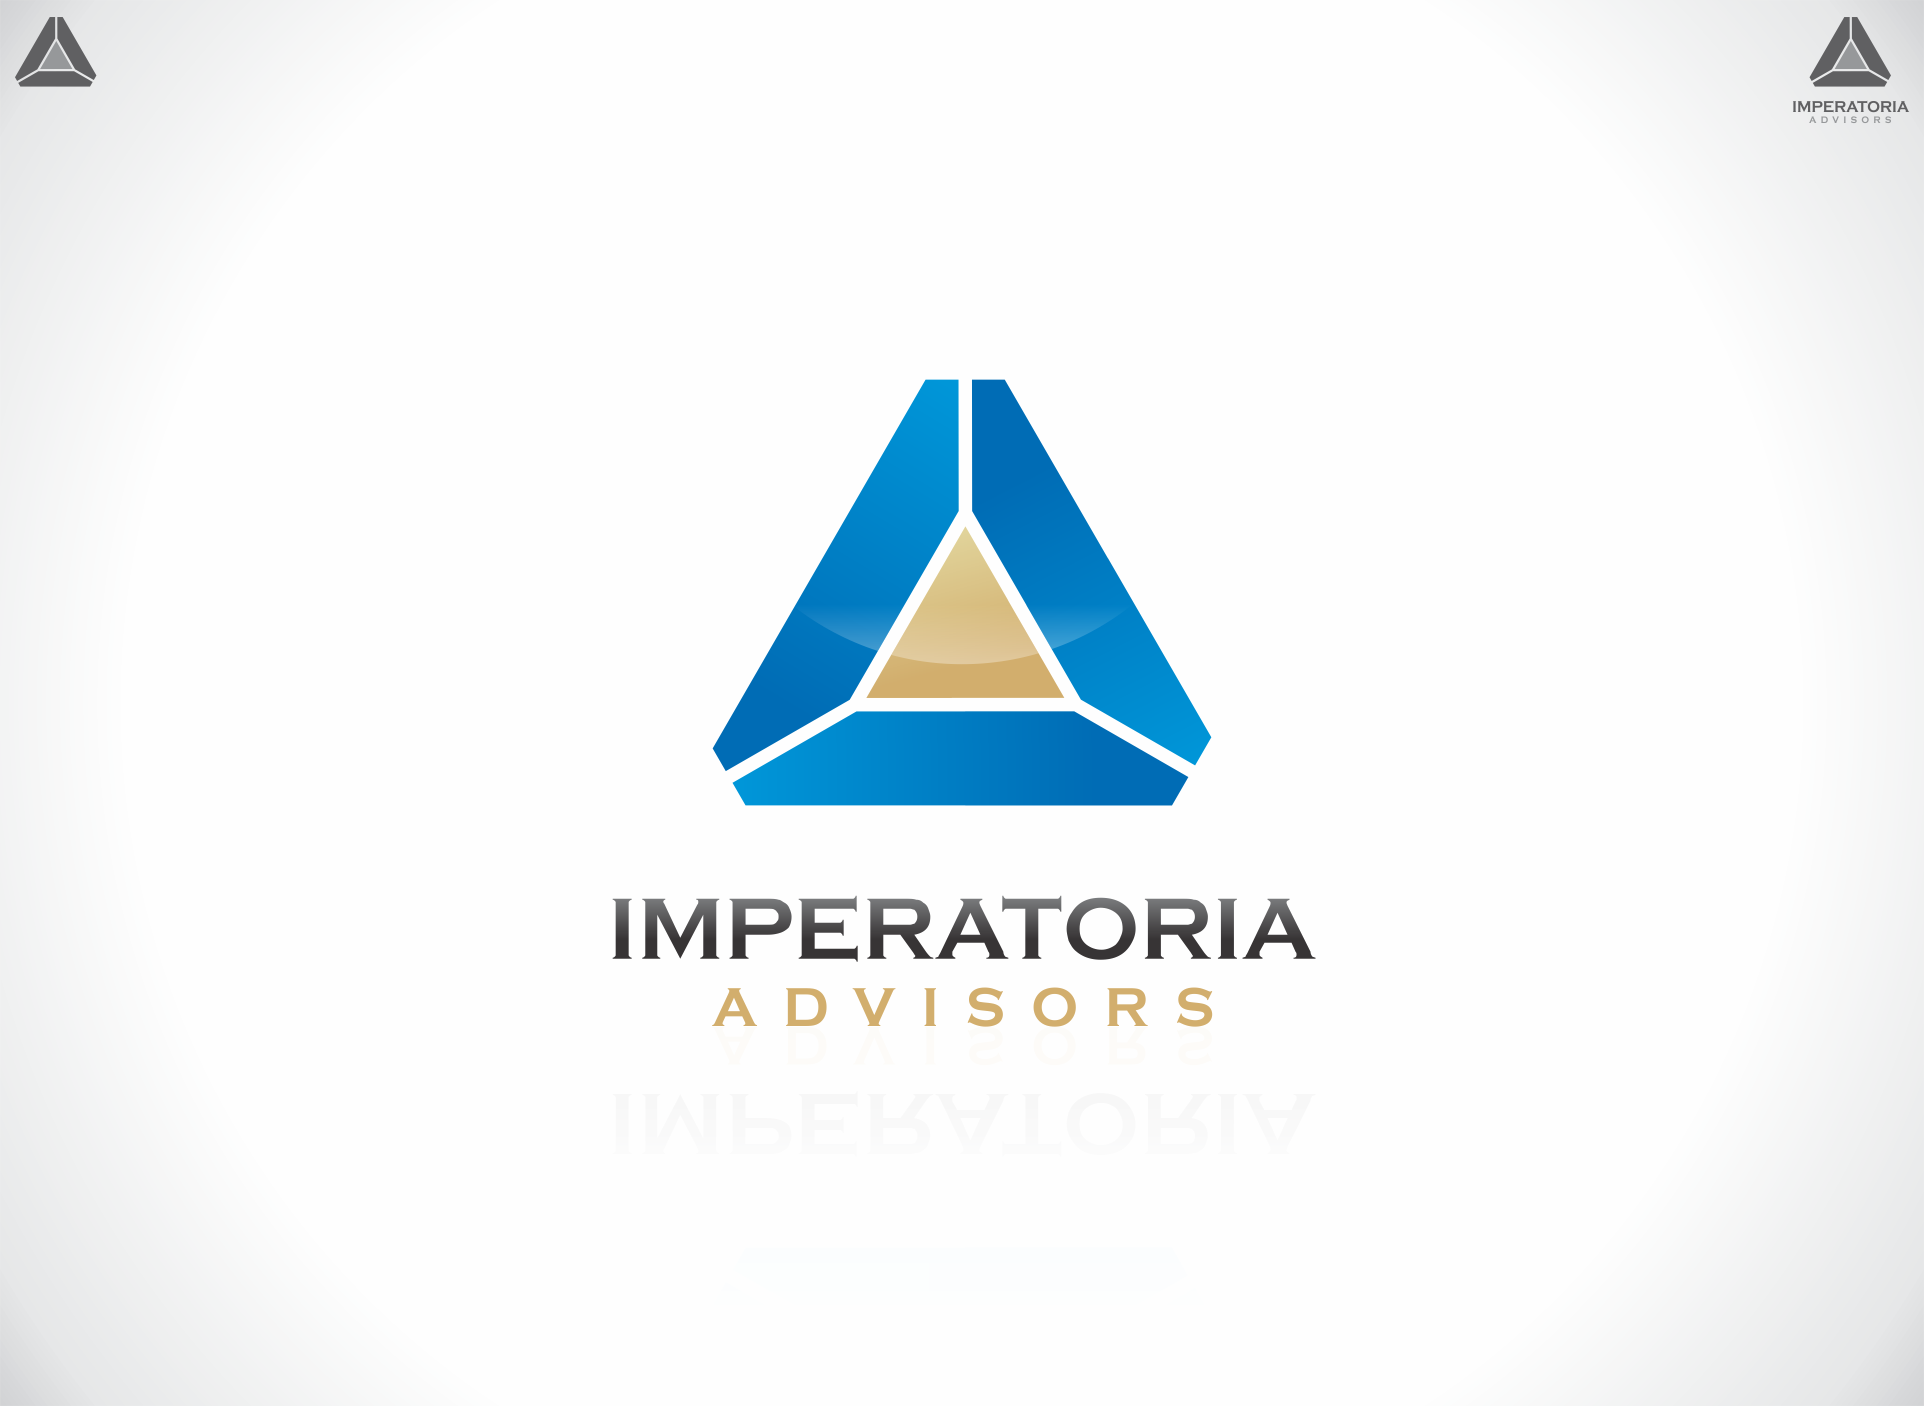 Logo Design by dandor - Entry No. 47 in the Logo Design Contest Unique Logo Design Wanted for Imperatoria Advisors.